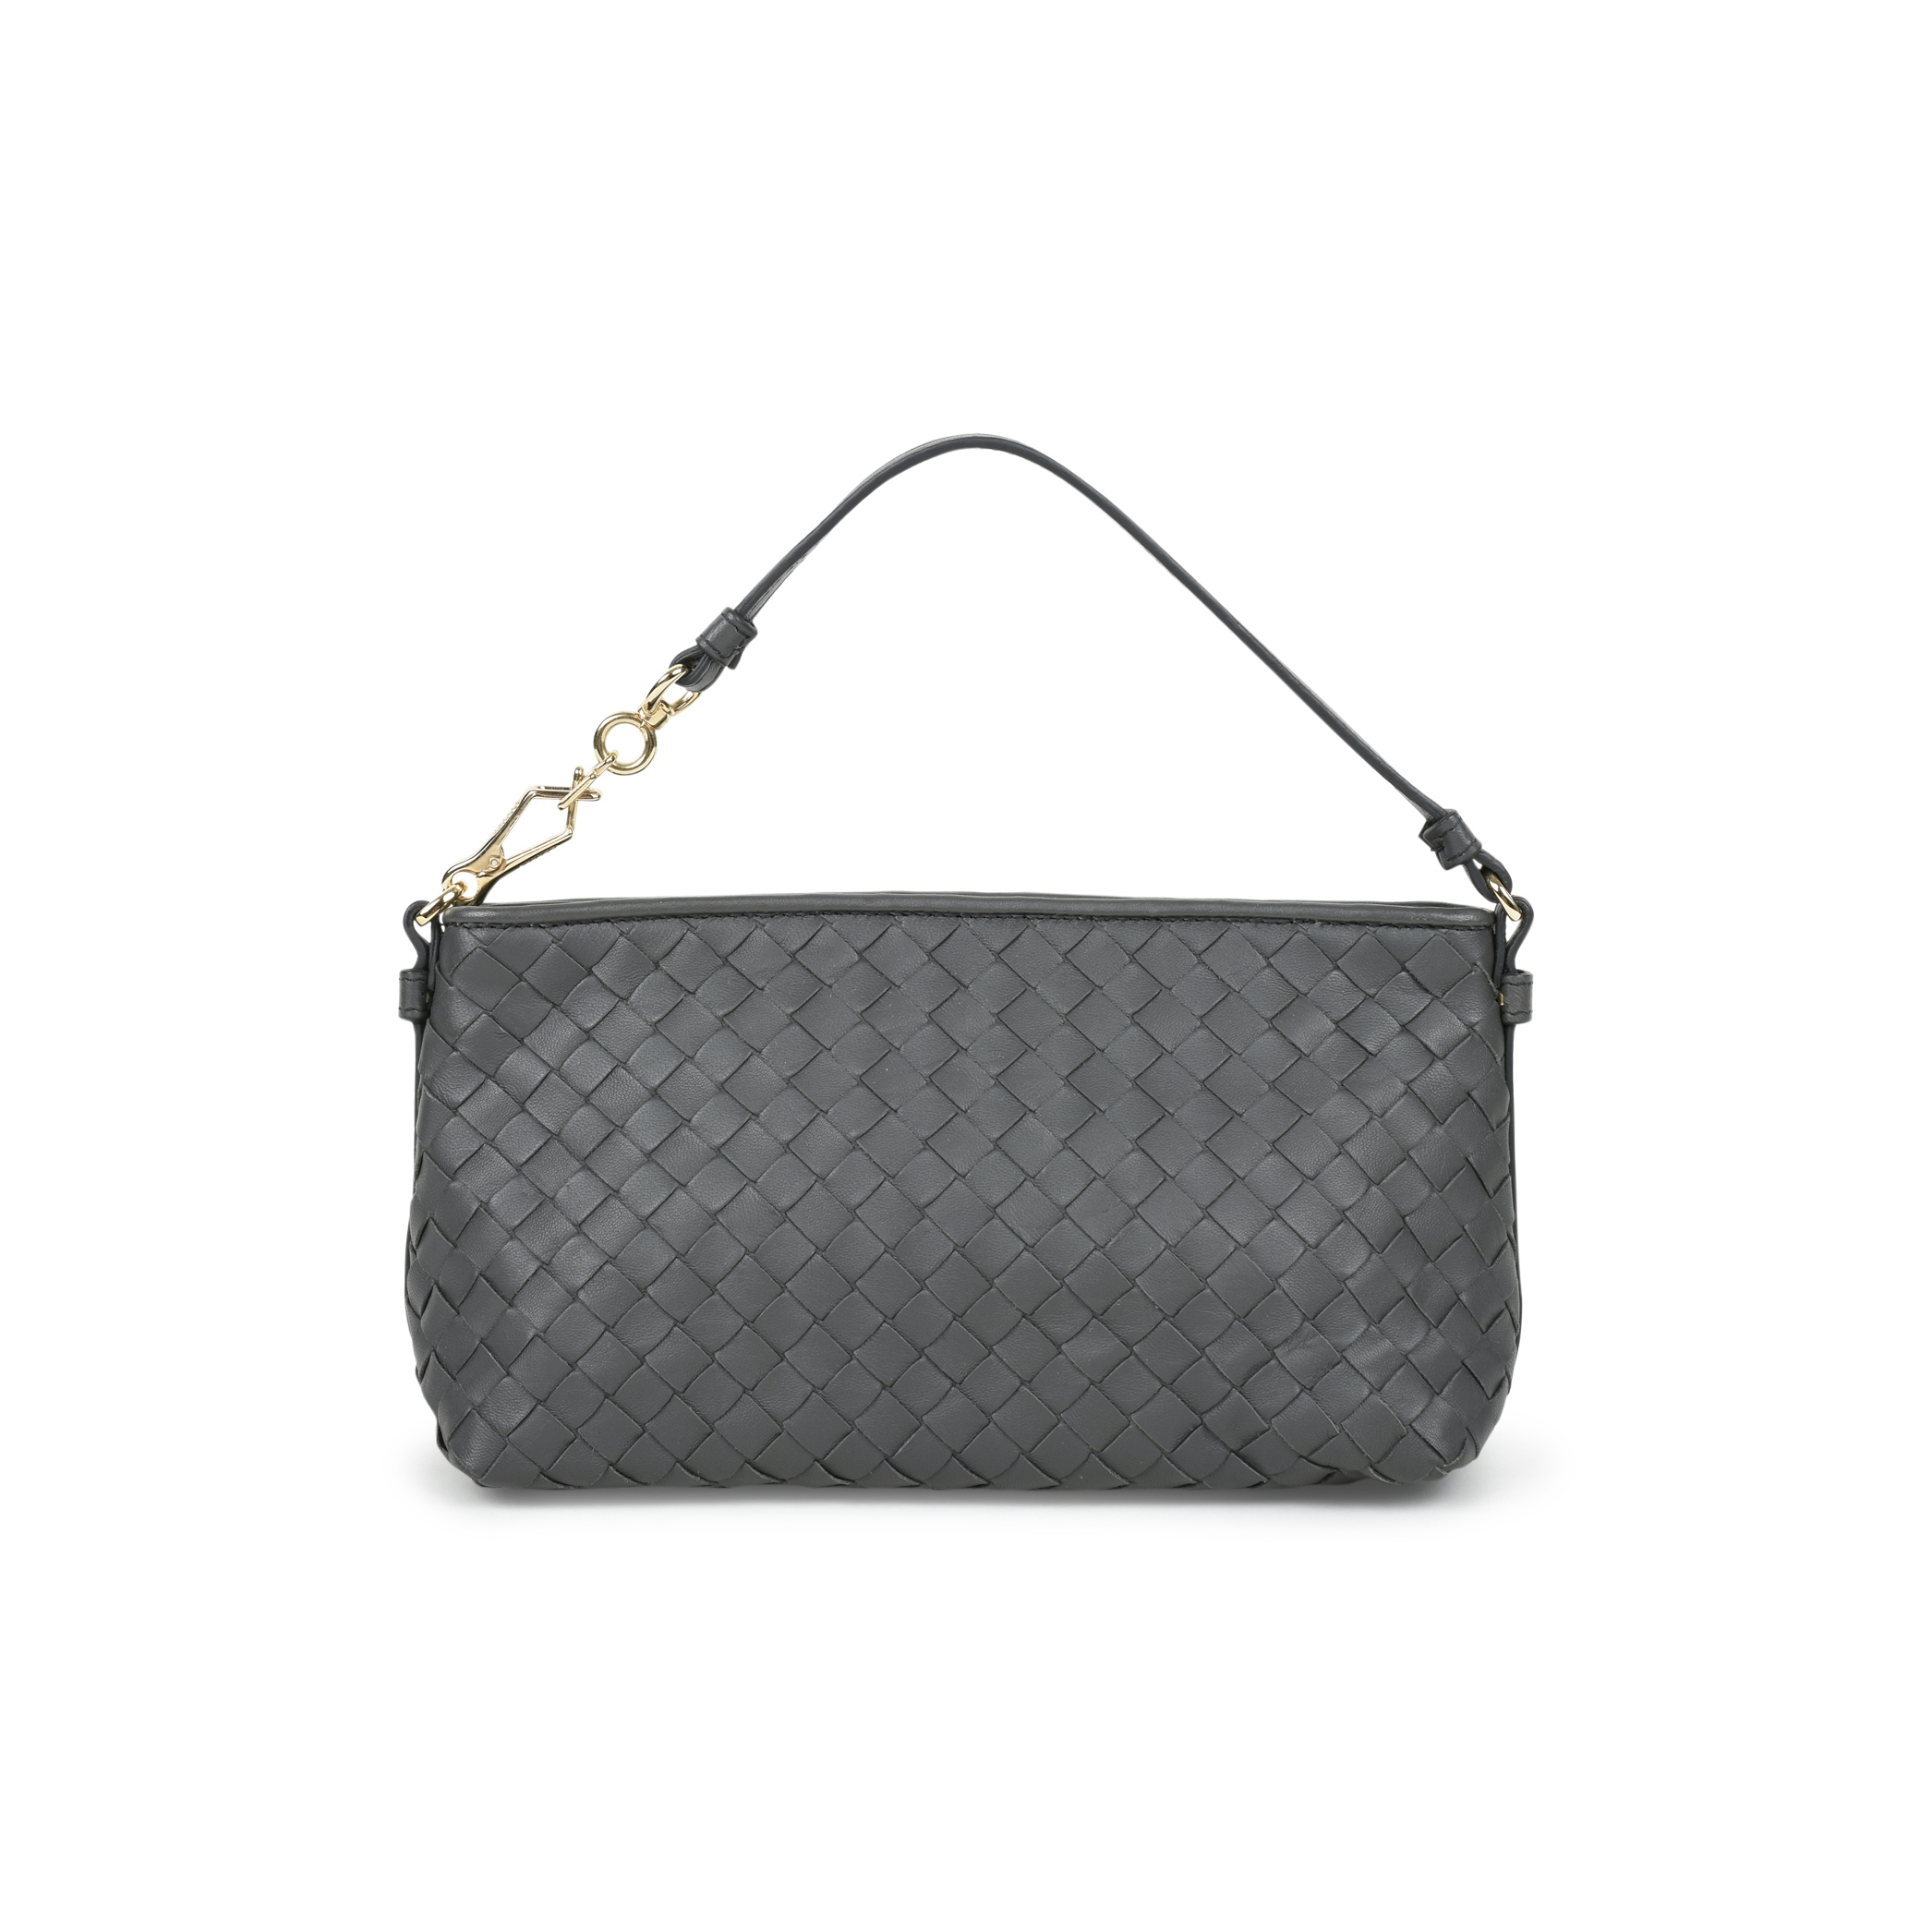 224eee9e255 Authentic Pre Owned Bottega Veneta Intrecciato Mini Shoulder Bag  (PSS-472-00005)   THE FIFTH COLLECTION®